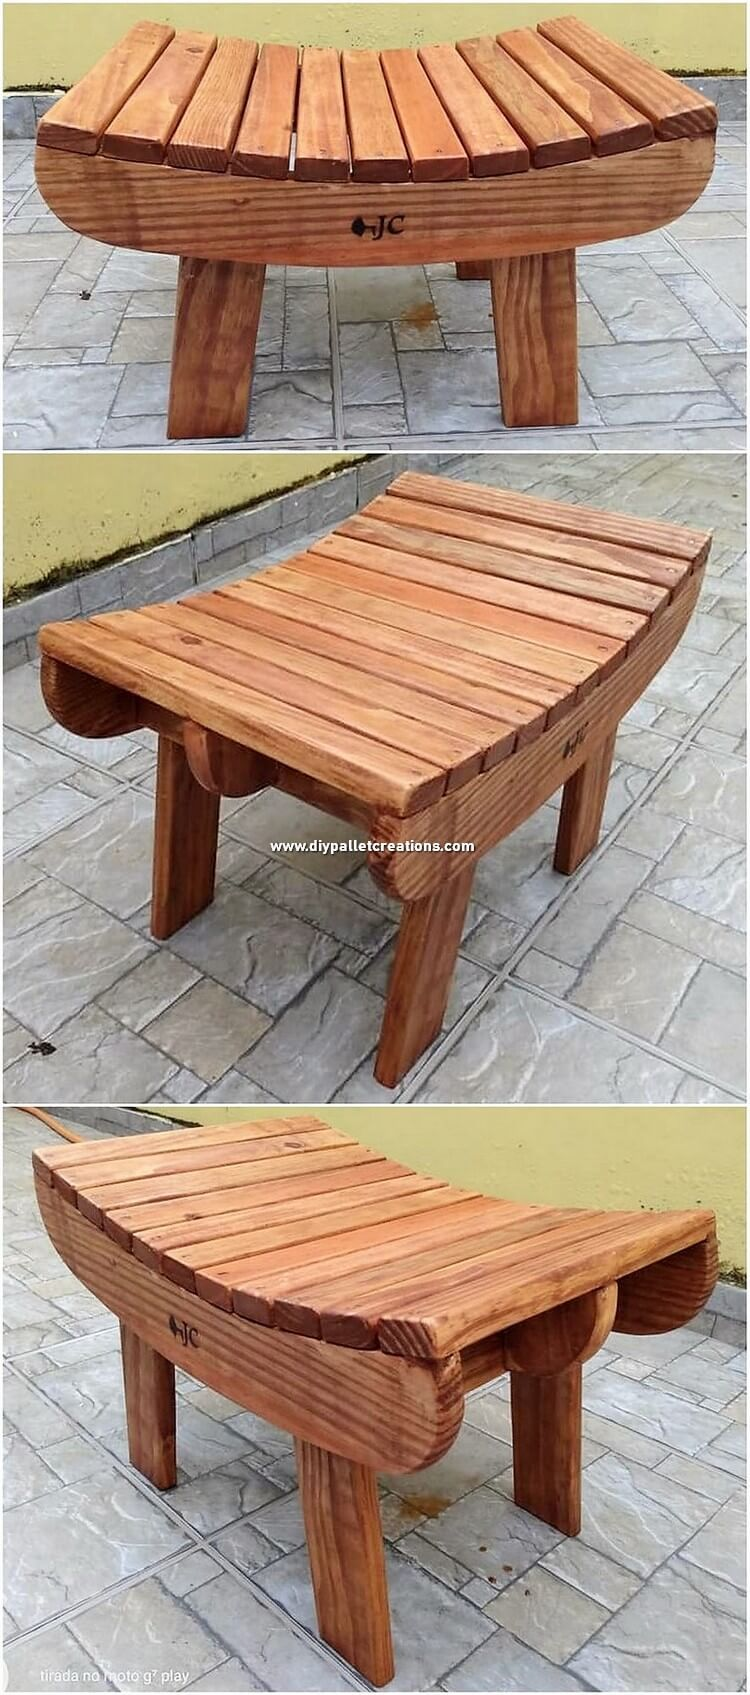 Fanciful Diy Projects Made With Shipping Pallets Diy Pallet Projects In 2021 Pallet Furniture Wood Pallets Pallet Projects